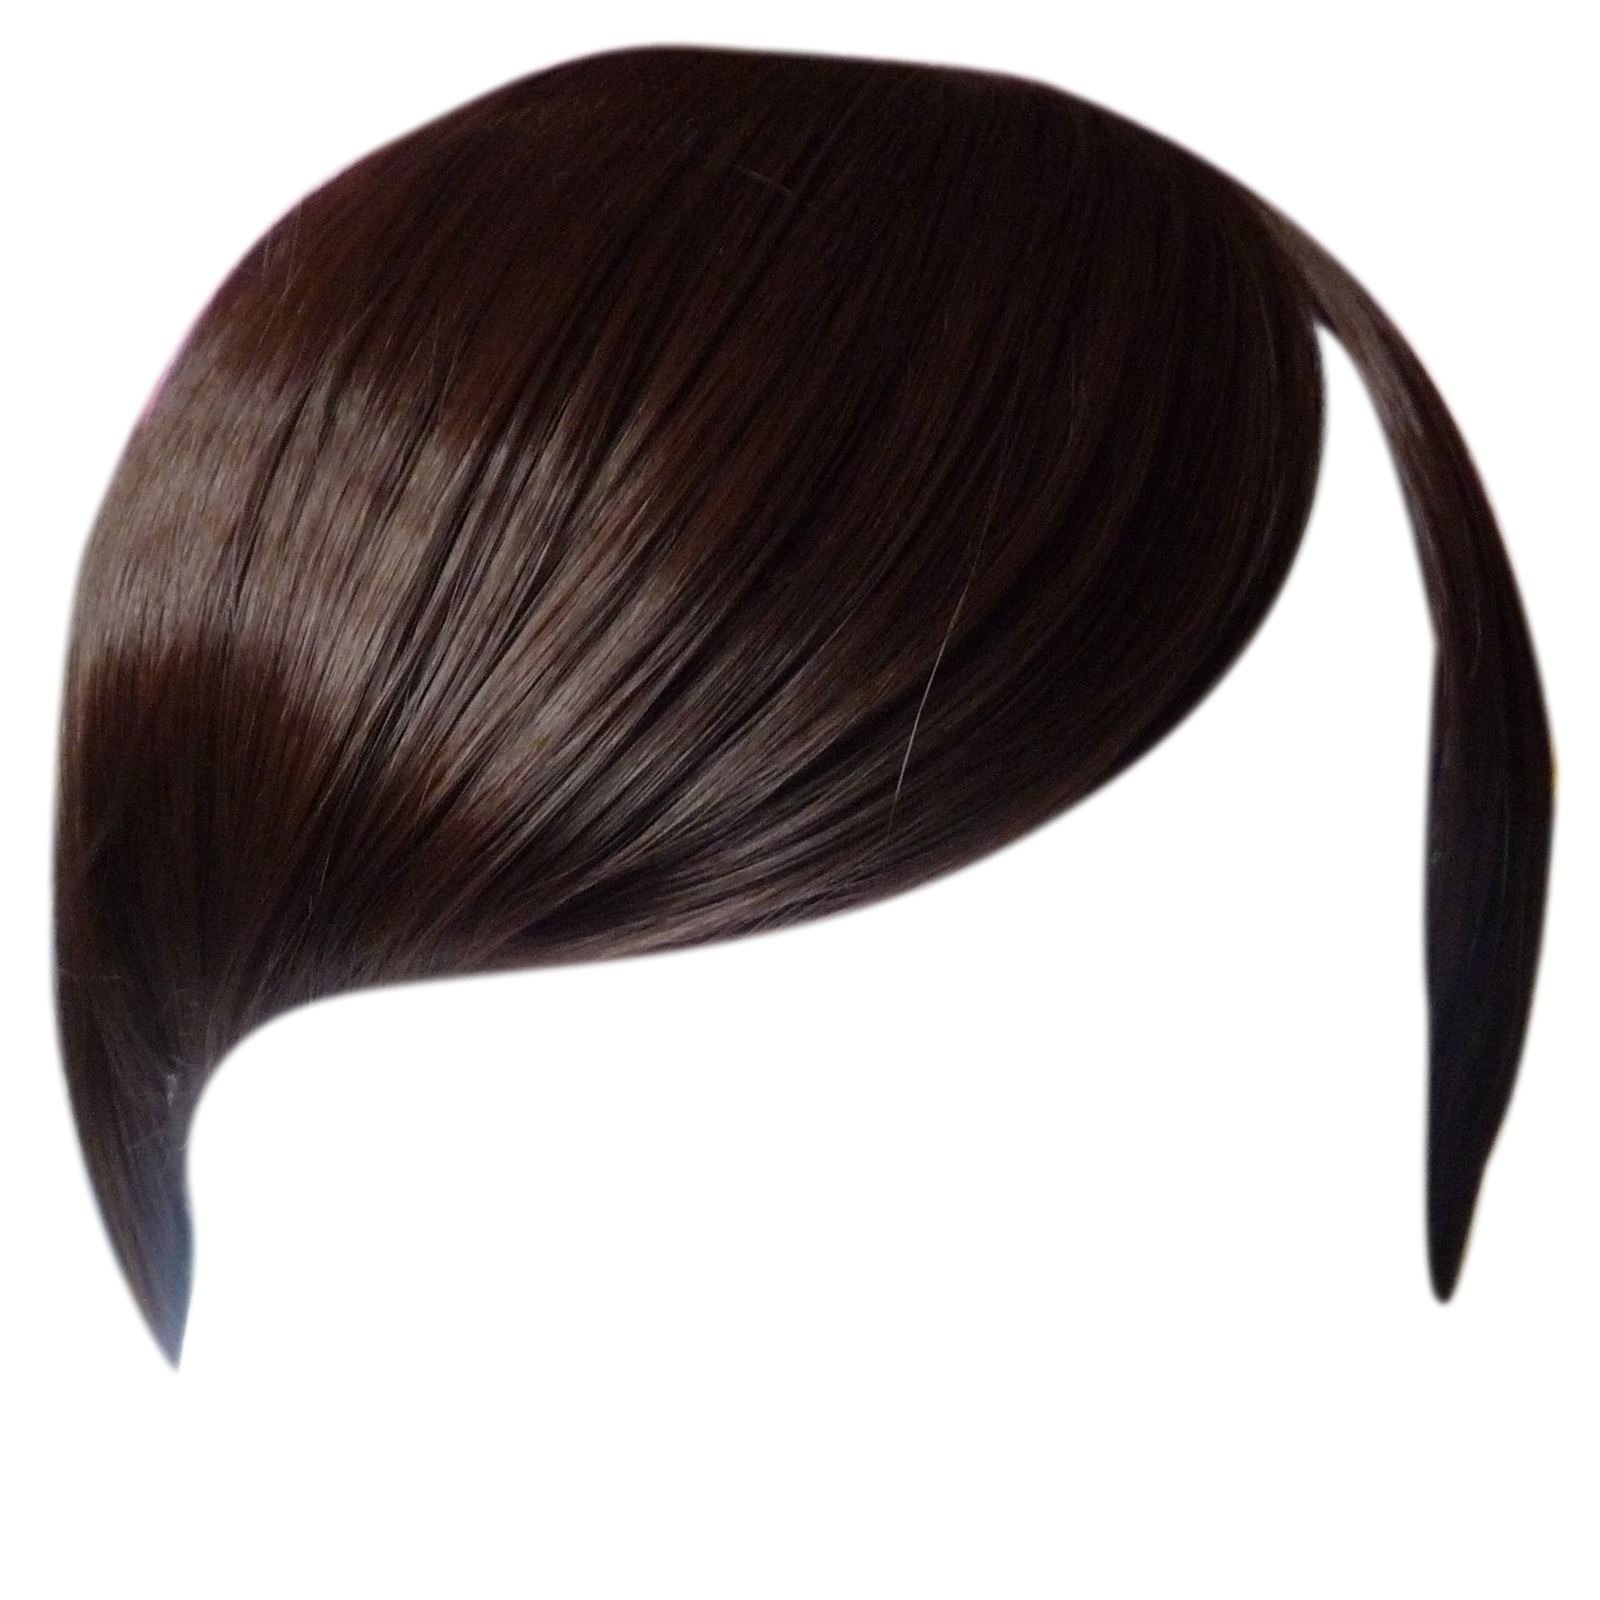 Fringe Bang Clip In On Hair Extensions Straight Medium